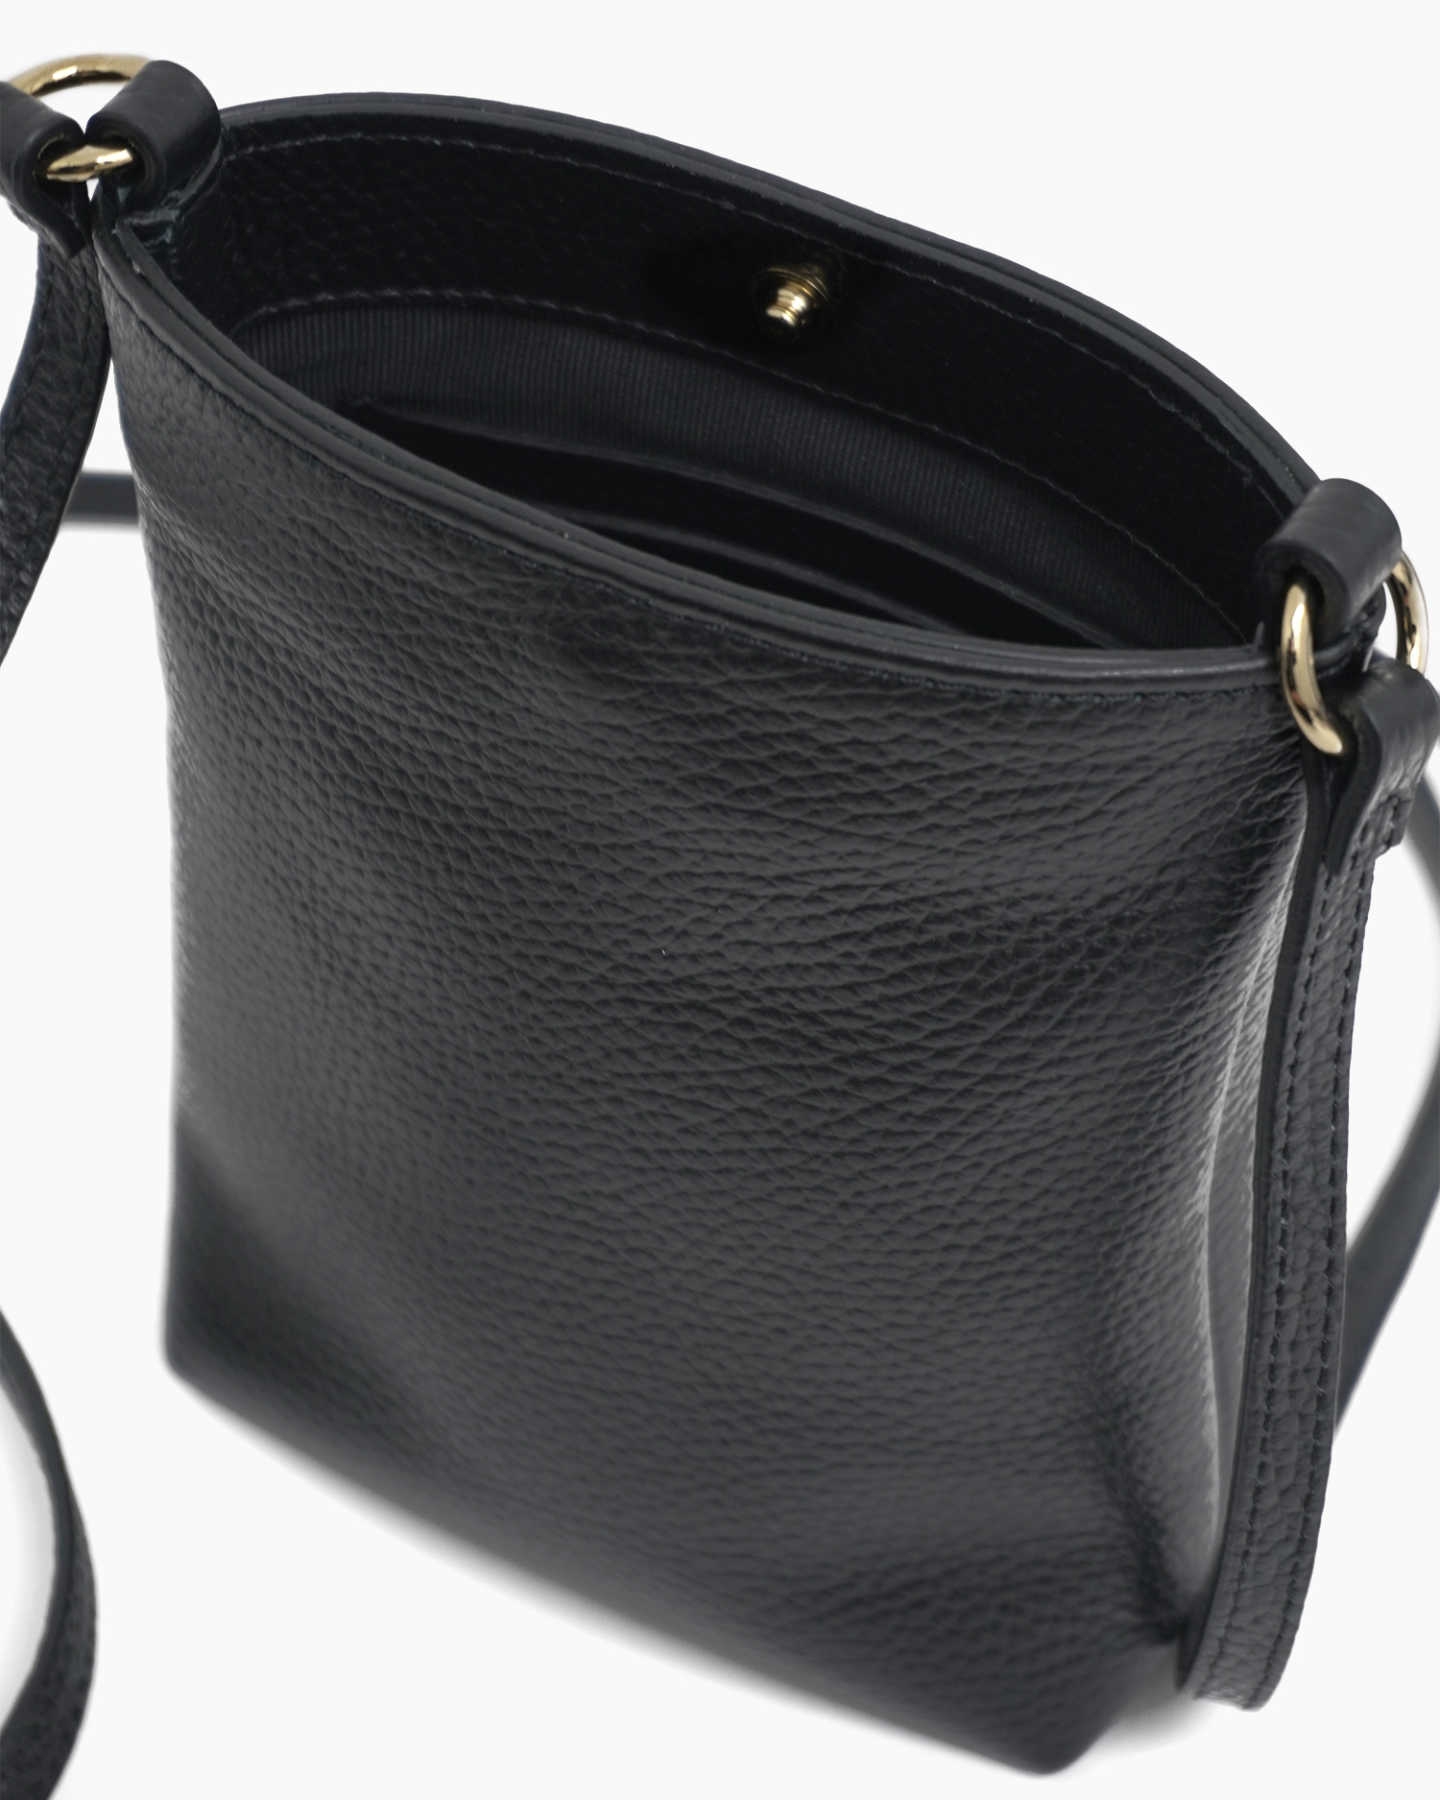 Italian Pebbled Leather Phone Crossbody - Black - 8 - Thumbnail